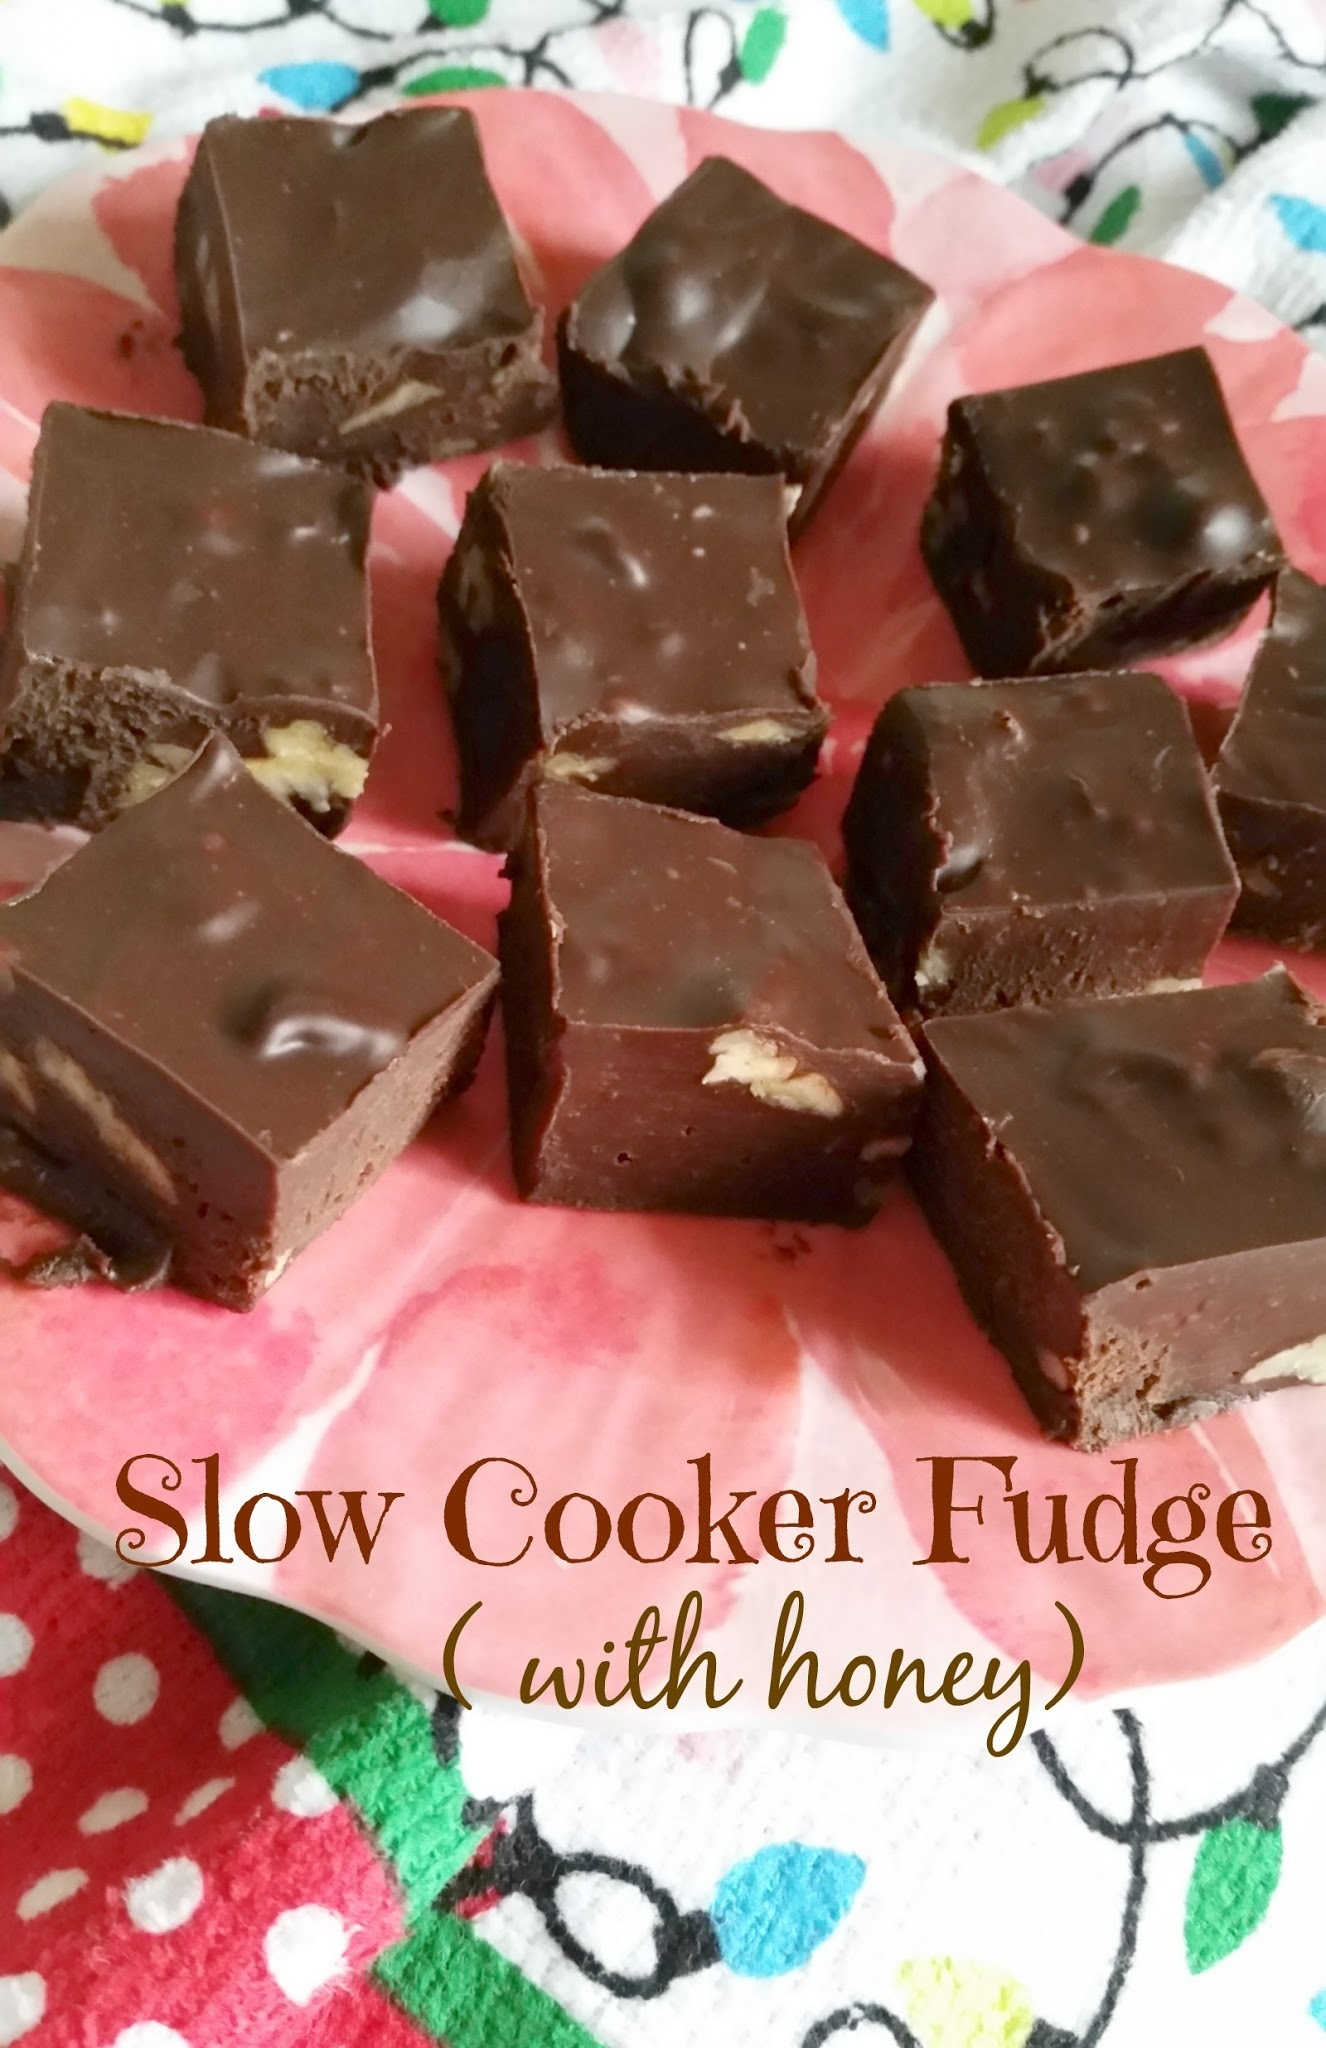 Slow Cooker Fudge (made with honey)